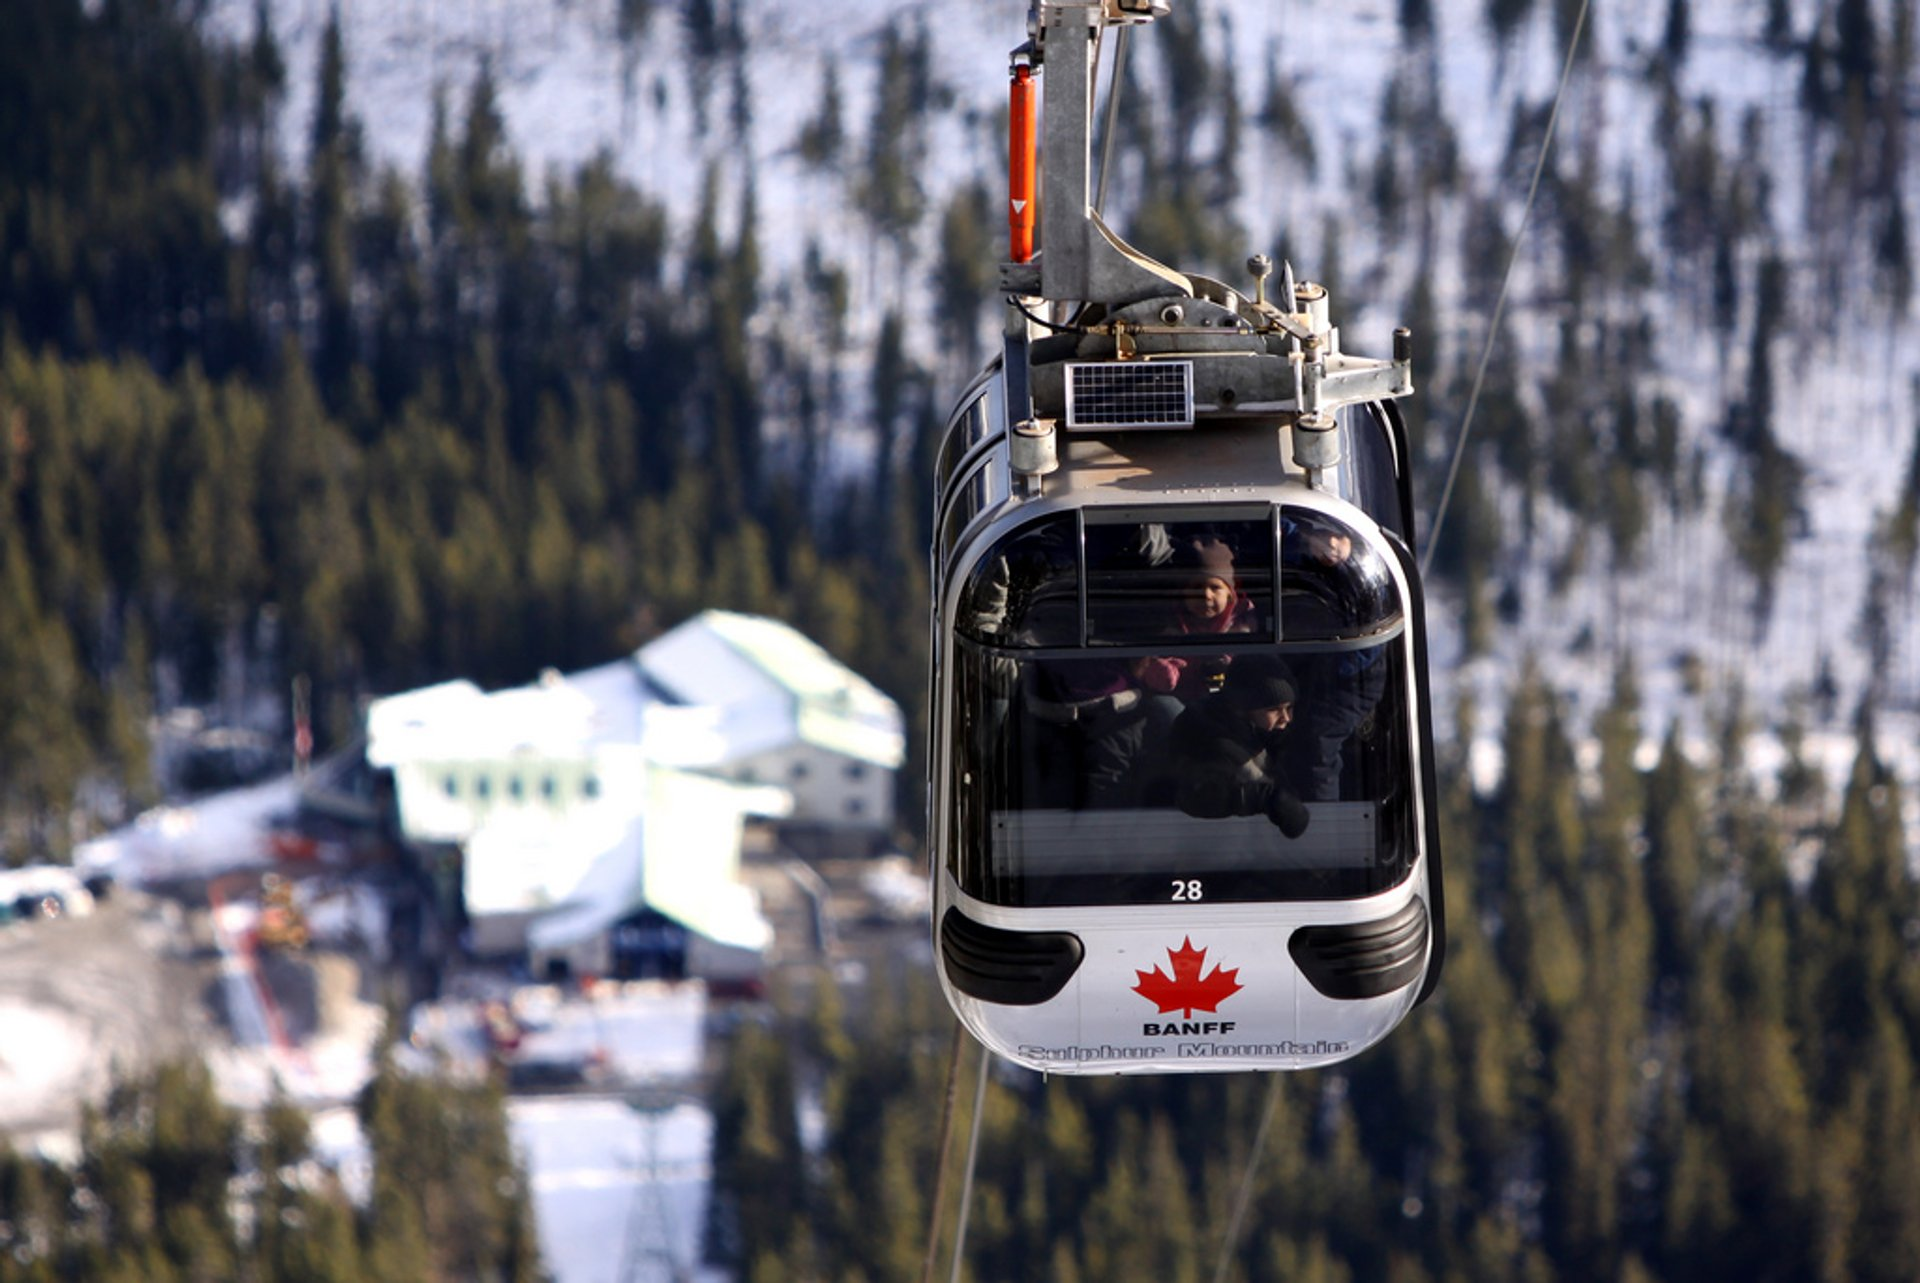 Banff Gondola in Banff & Jasper National Parks 2019 - Best Time